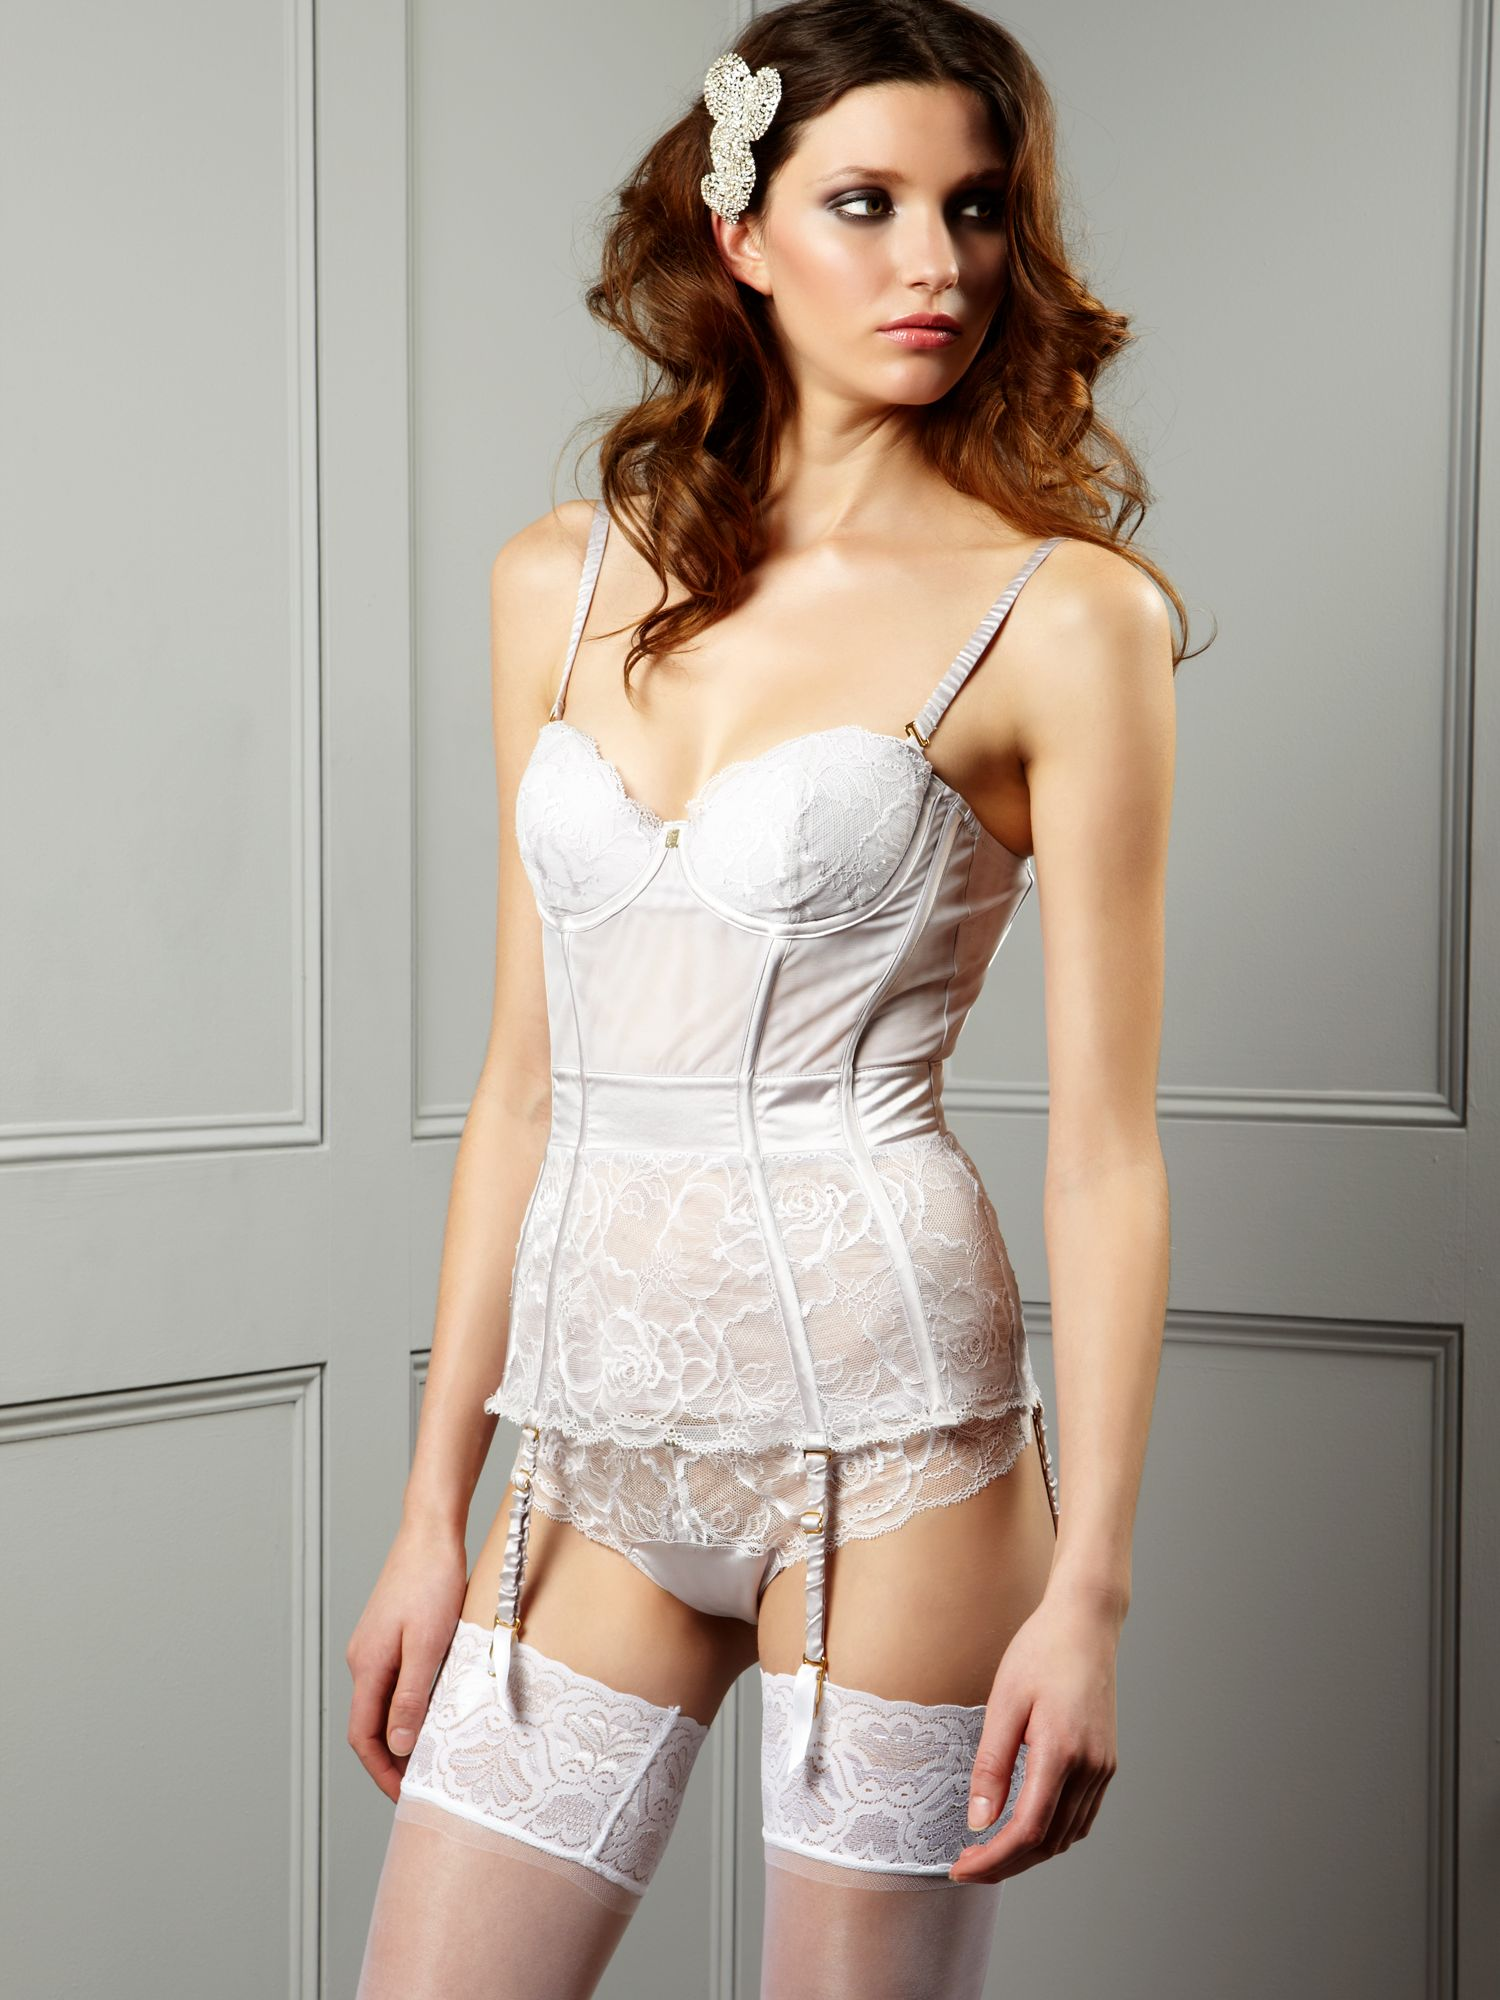 Rose of persia strapless bustier